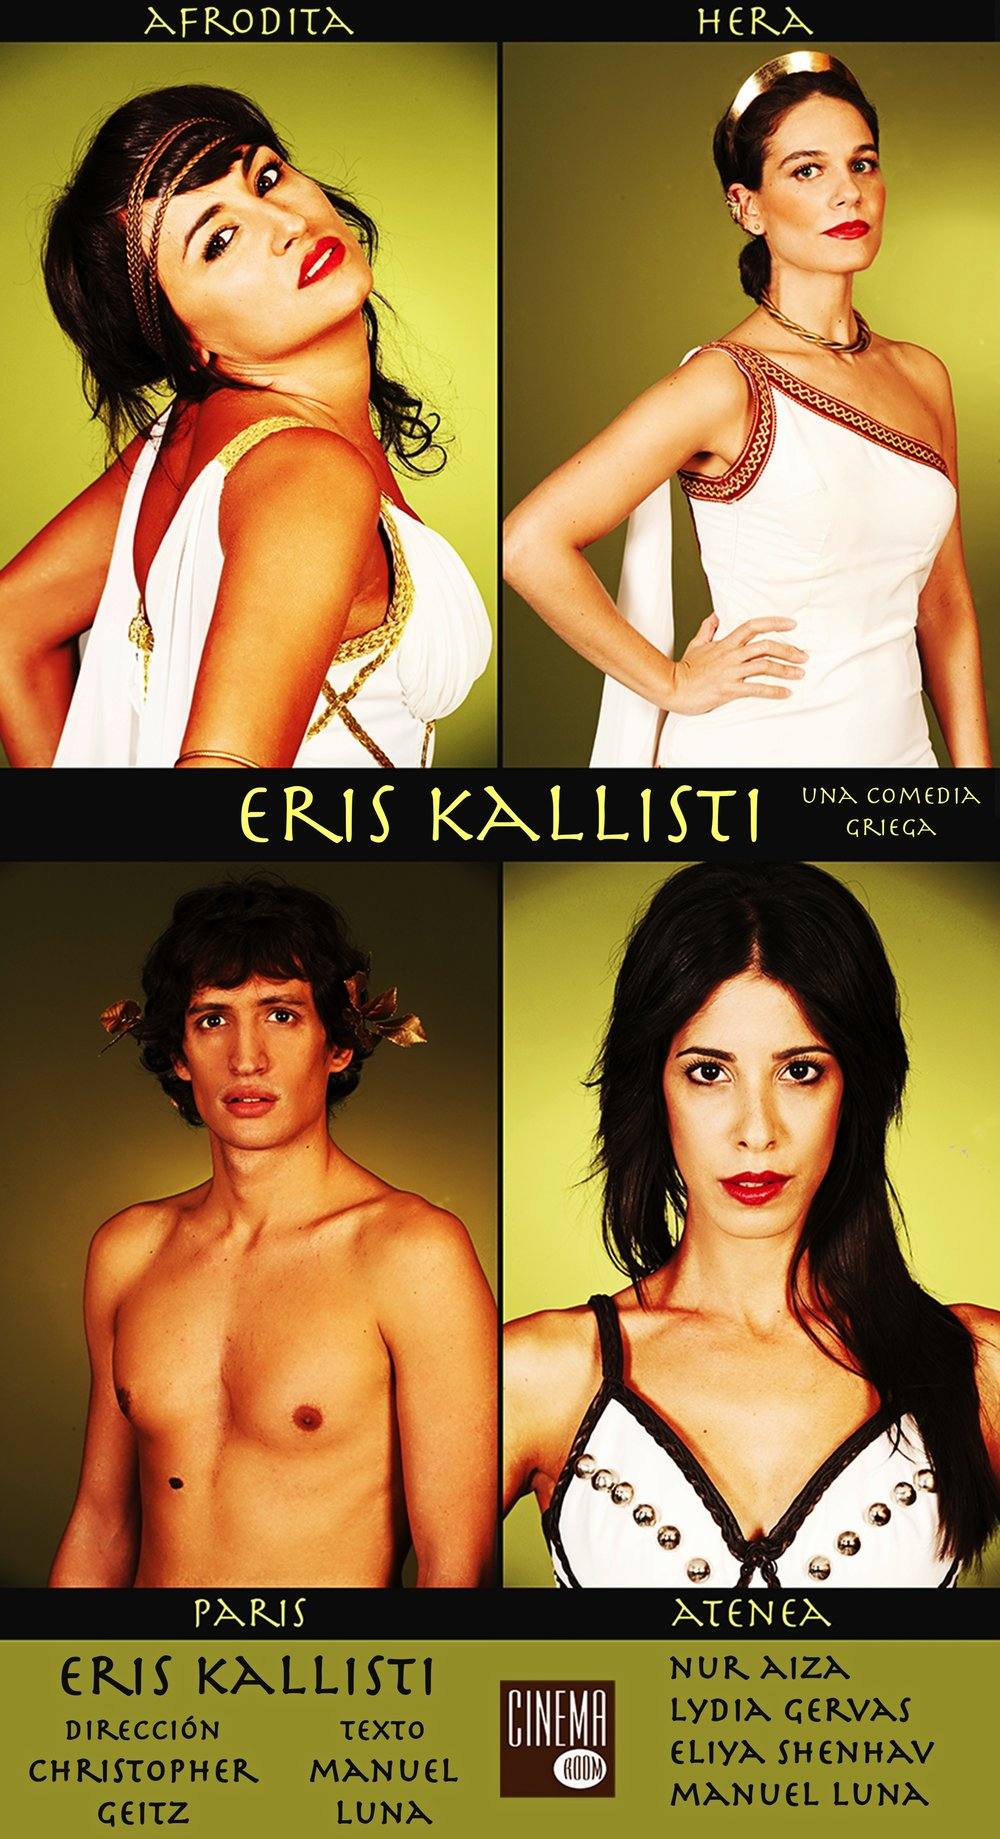 Cartel Eris Kallistilast_out.jpg